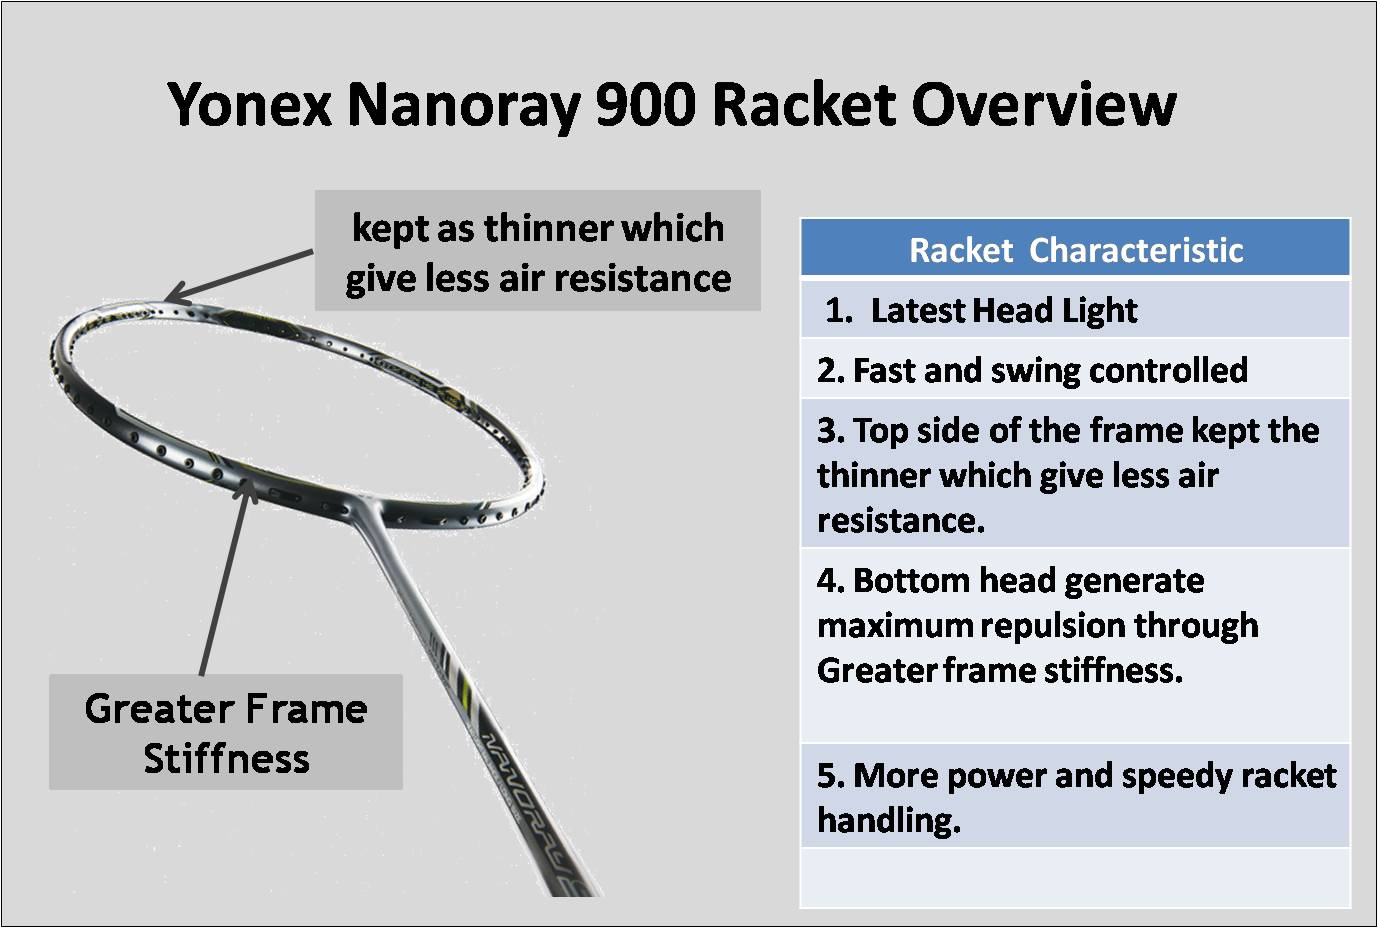 About Yonex Nanoray 900 Racket Overview